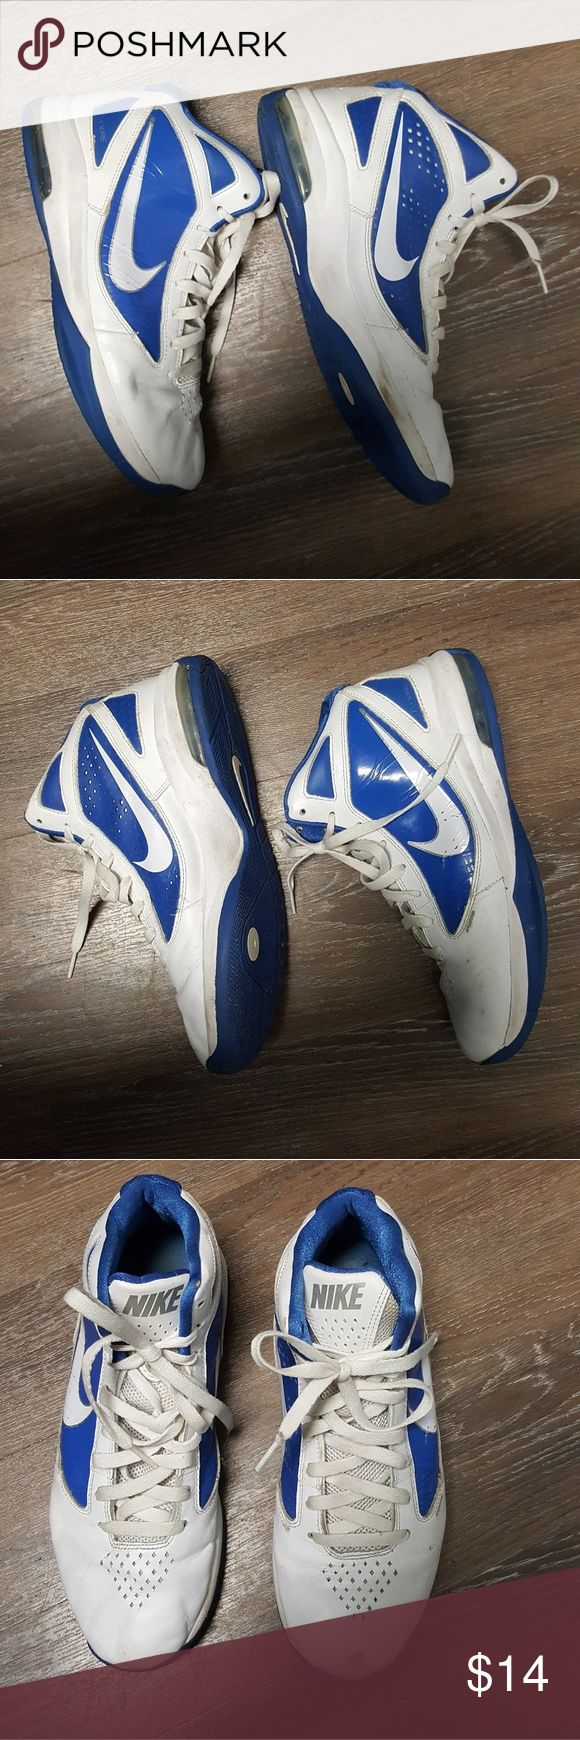 Firm Mens 10 retro nike high top blue and whote Worn in some places but not done mens size 10 nike sneakers as pictured. Shoes laces good condition soles firmly attached some scuffs Nike Shoes Sneakers